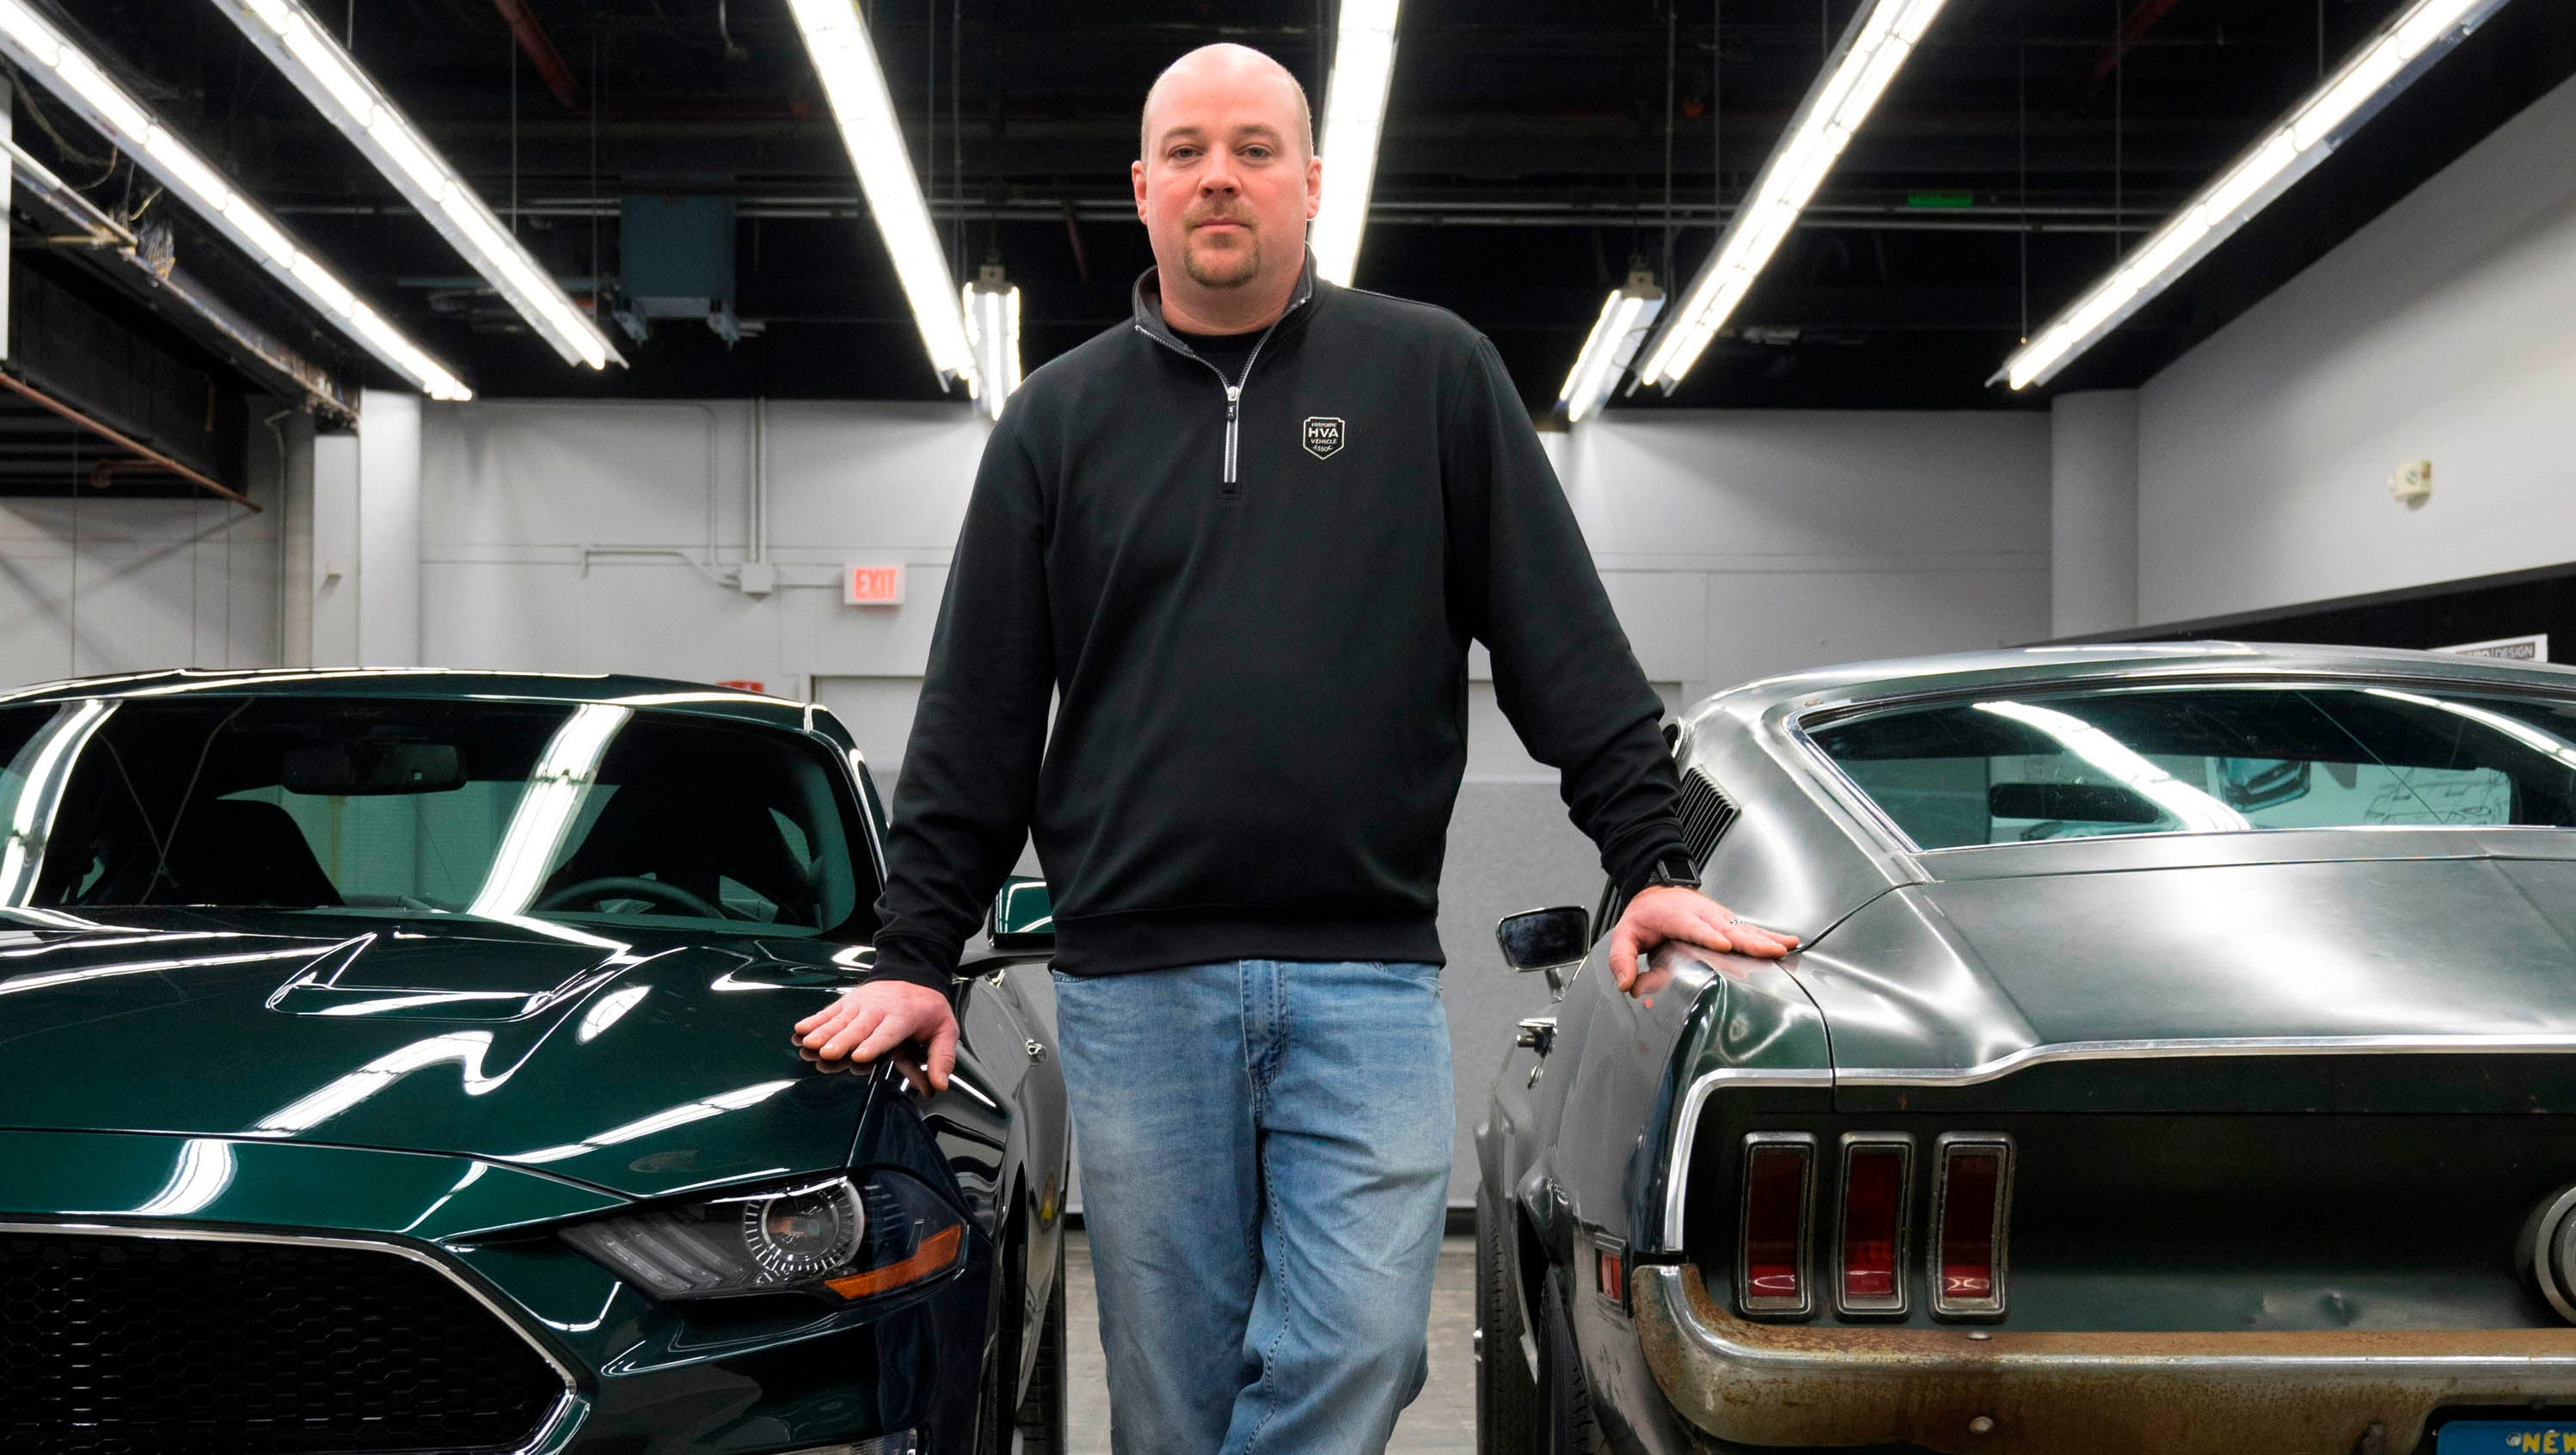 1968 Ford Mustang Bullitt Driven By Mcqueen Sold To Mystery Bidder